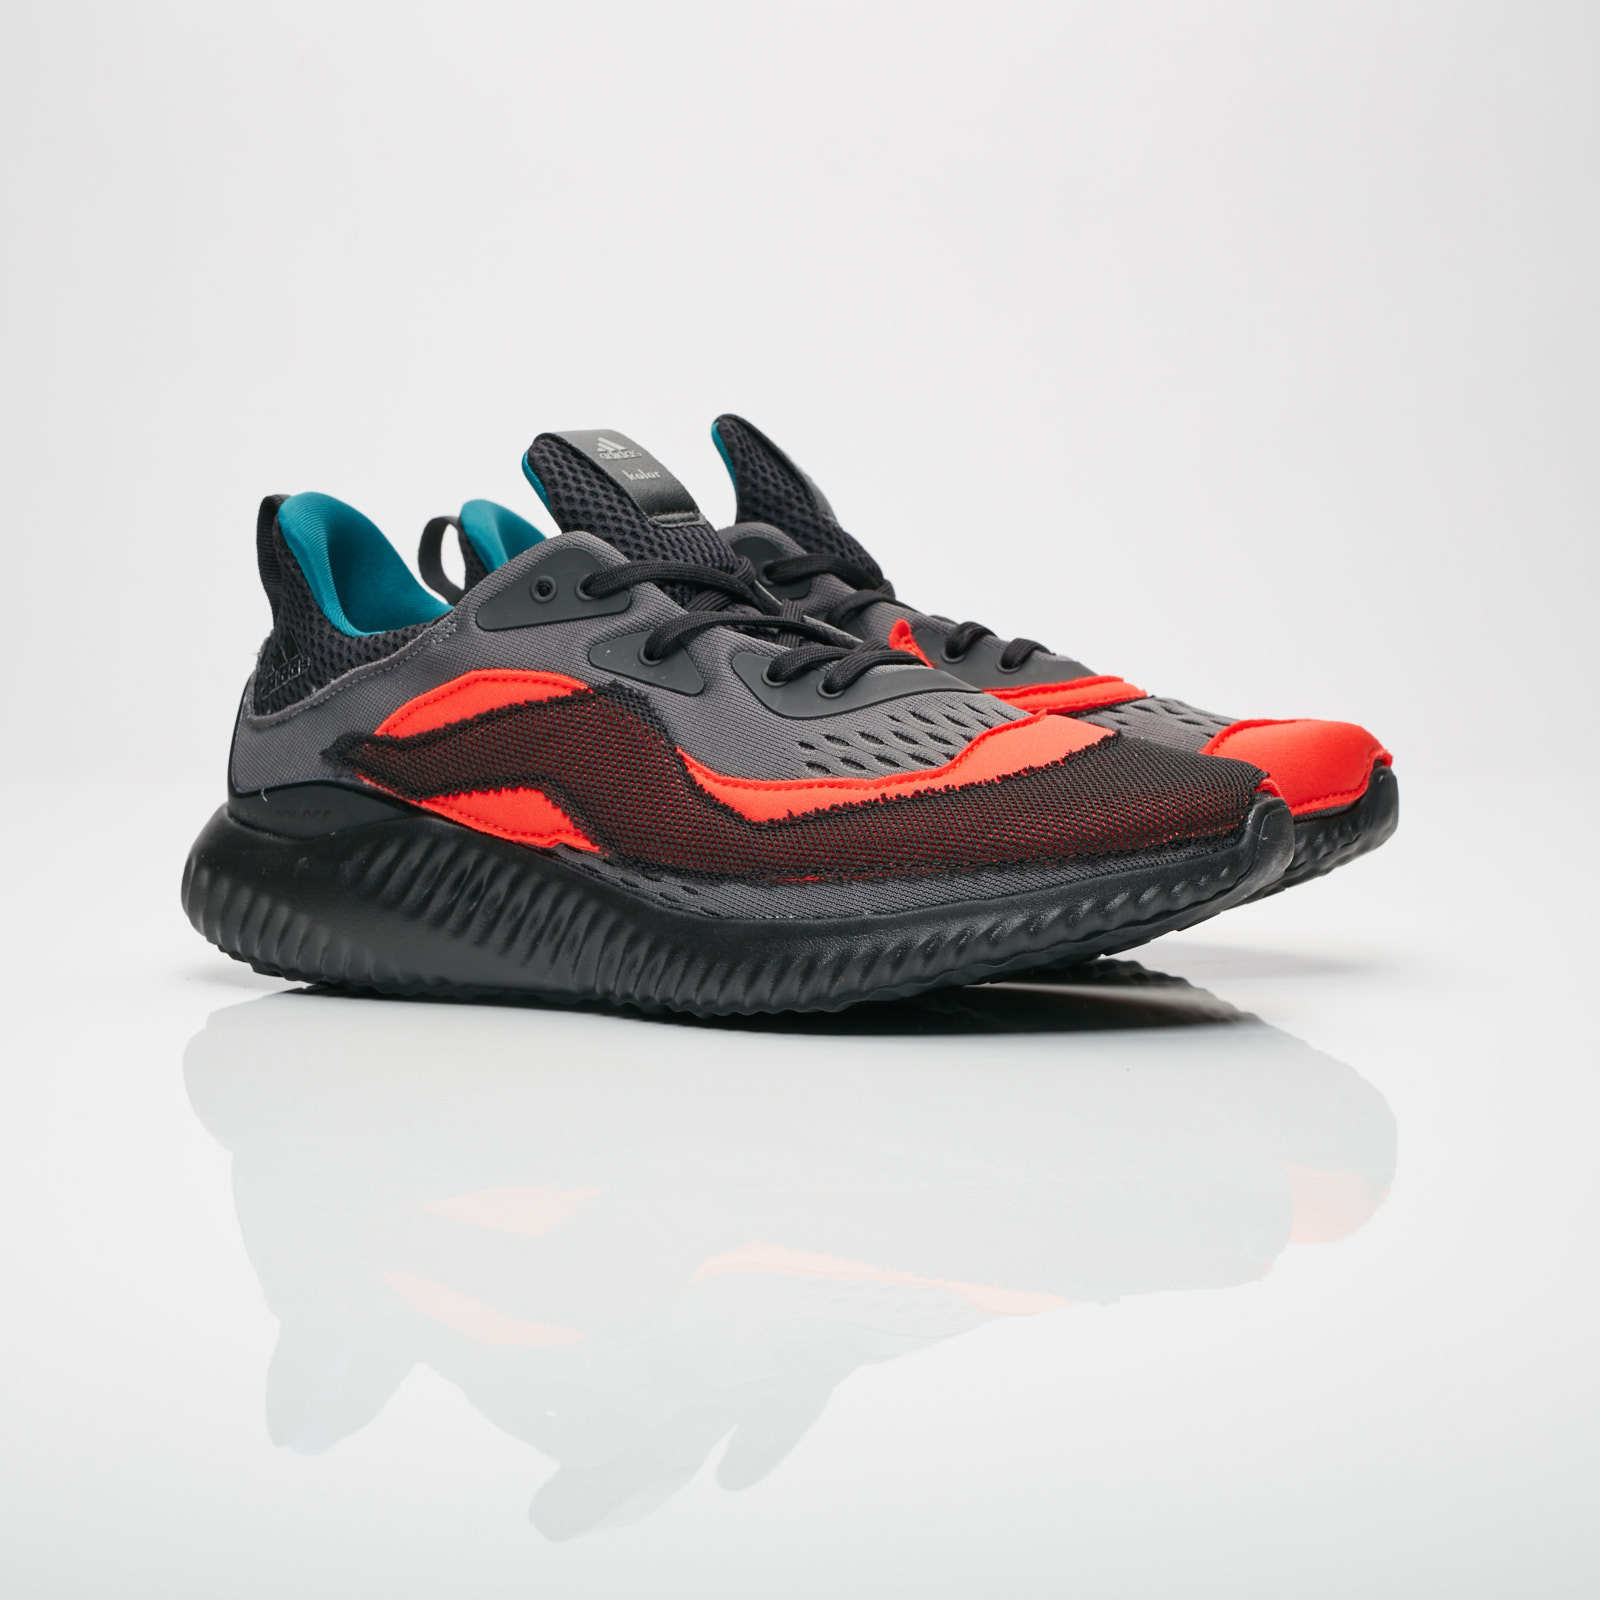 036530e1438bd4 adidas Alphabounce by Kolor - Ac7019 - Sneakersnstuff